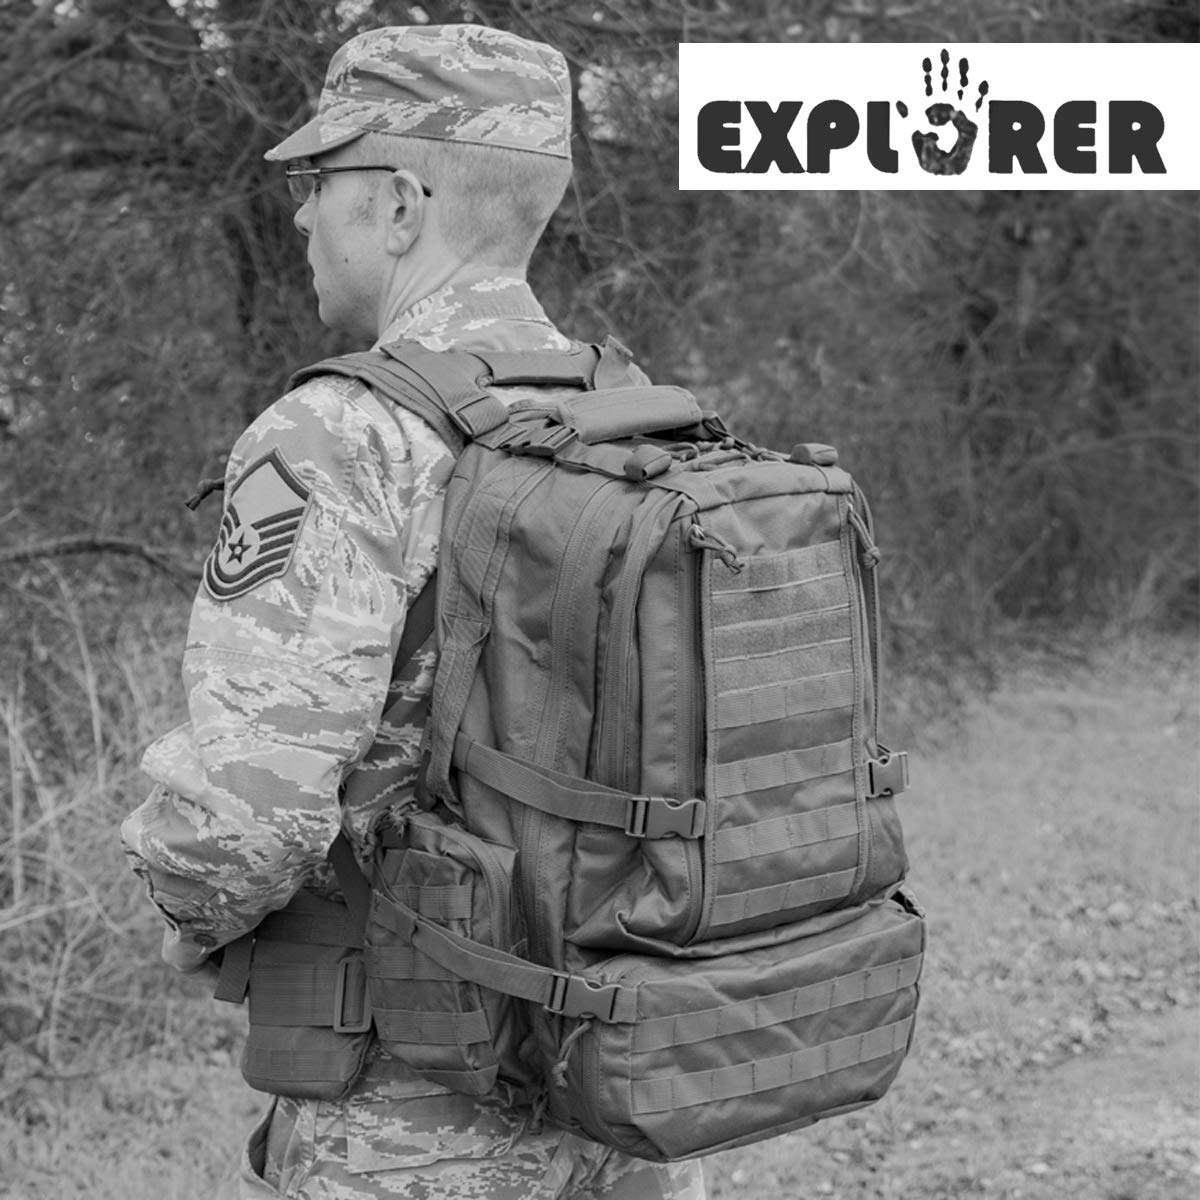 Explorer Tactical Backpack Hunting Camo Heavy Duty Duffel Bag Luggage  Travel Gear for Huniting Outdoor Police Security Every Day Use